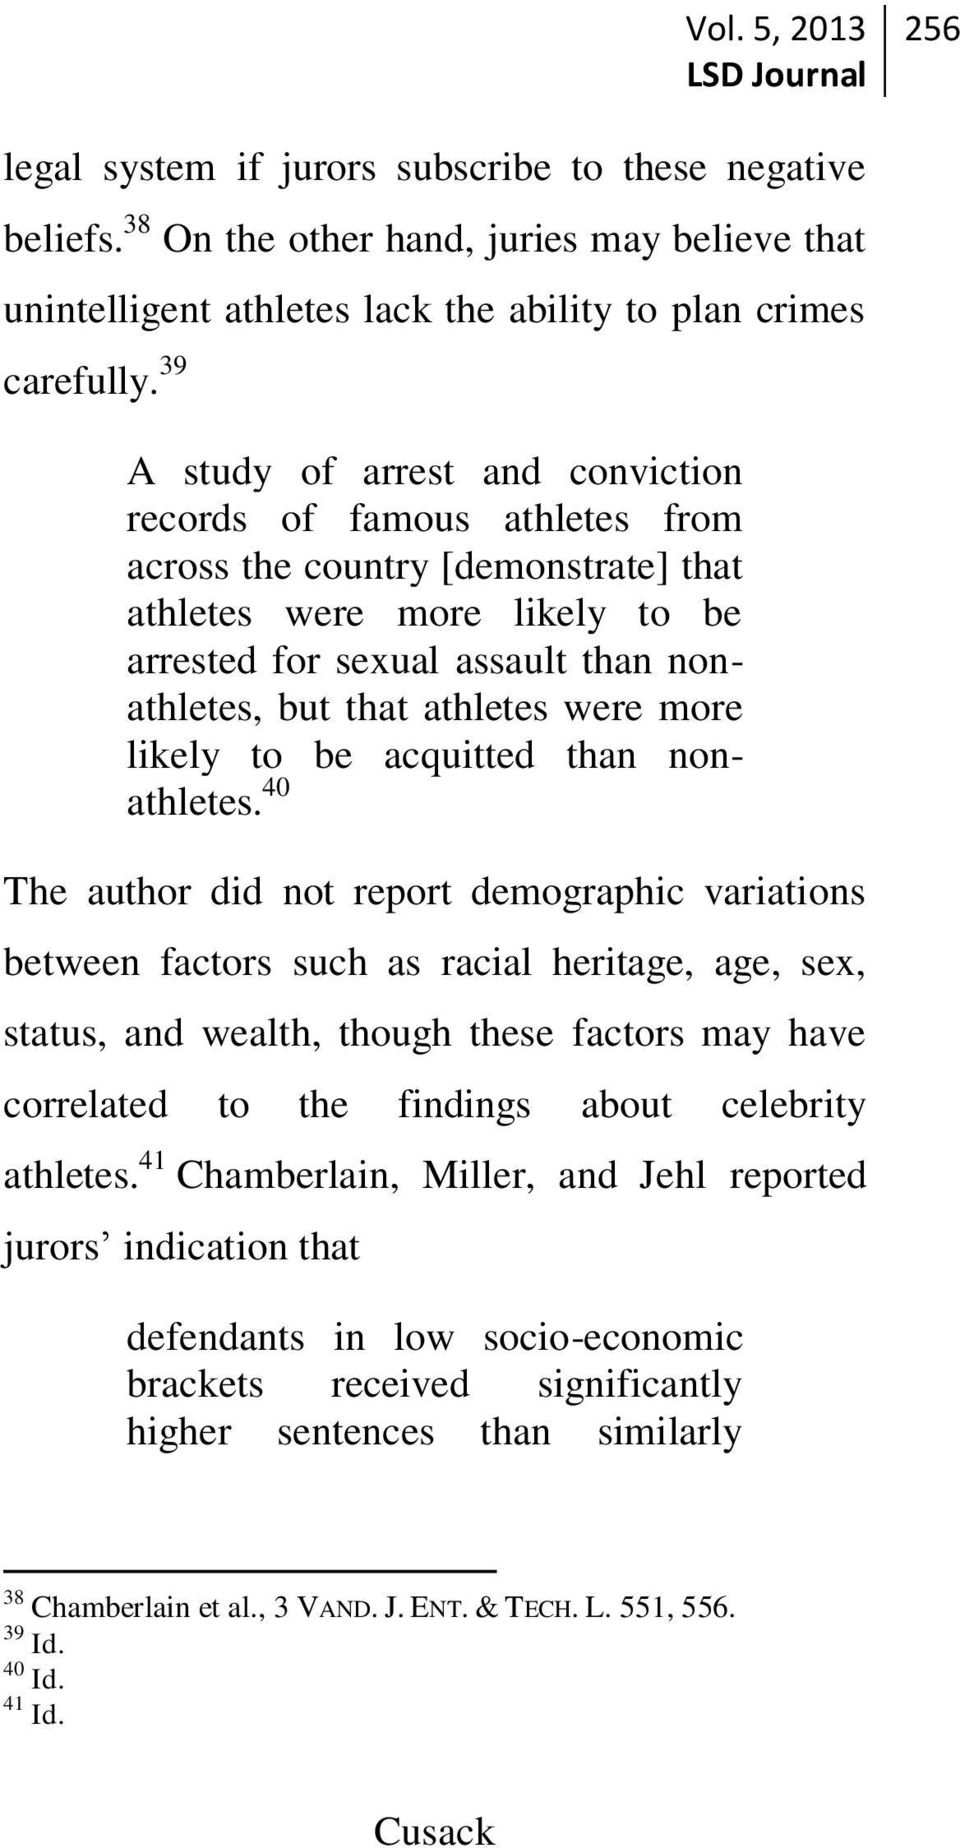 athletes were more likely to be acquitted than nonathletes.